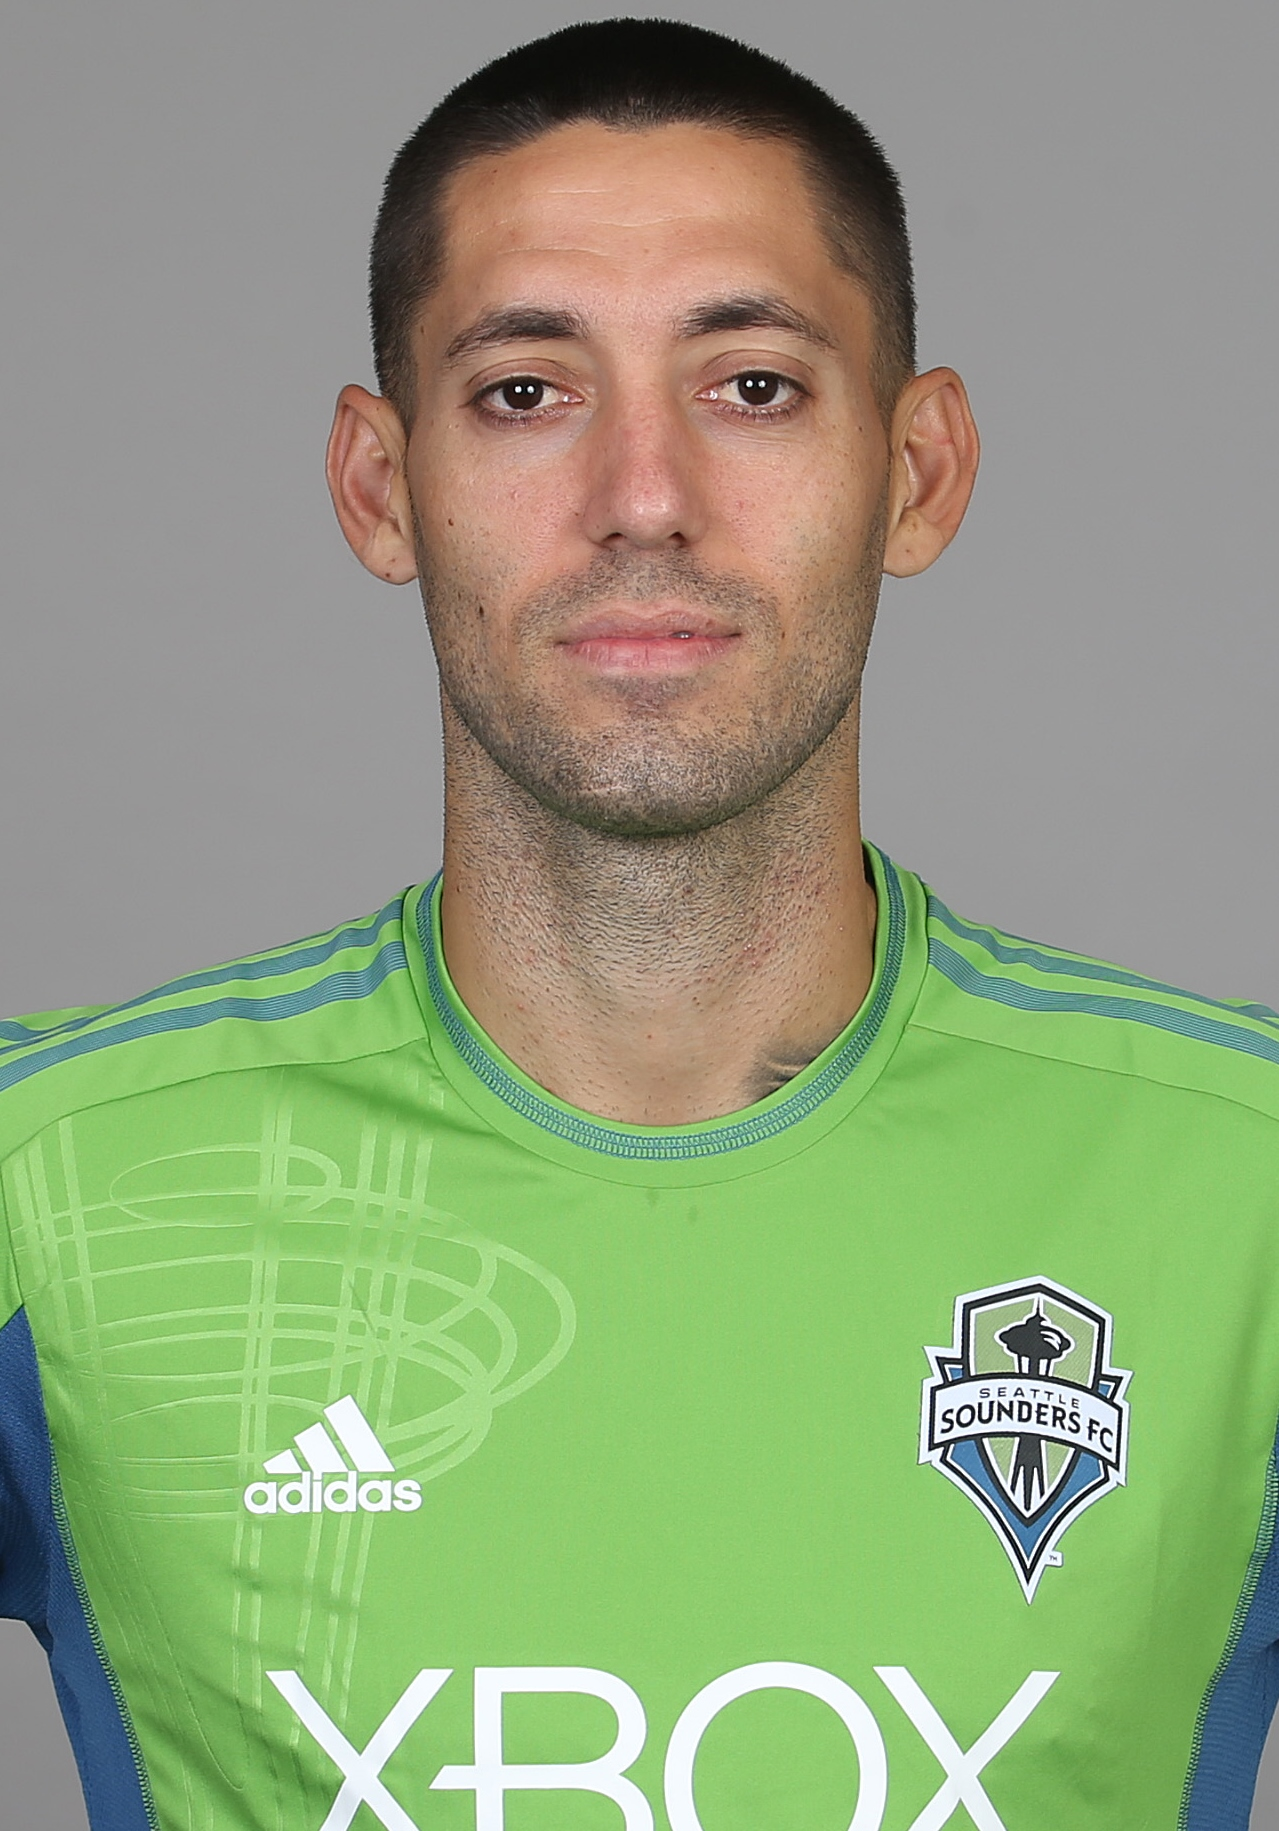 MLS has given Clint Dempsey an additional onegame suspension for throwing an elbow at Jacori Hayes in the Seattle Sounders 30 loss to FC Dallas